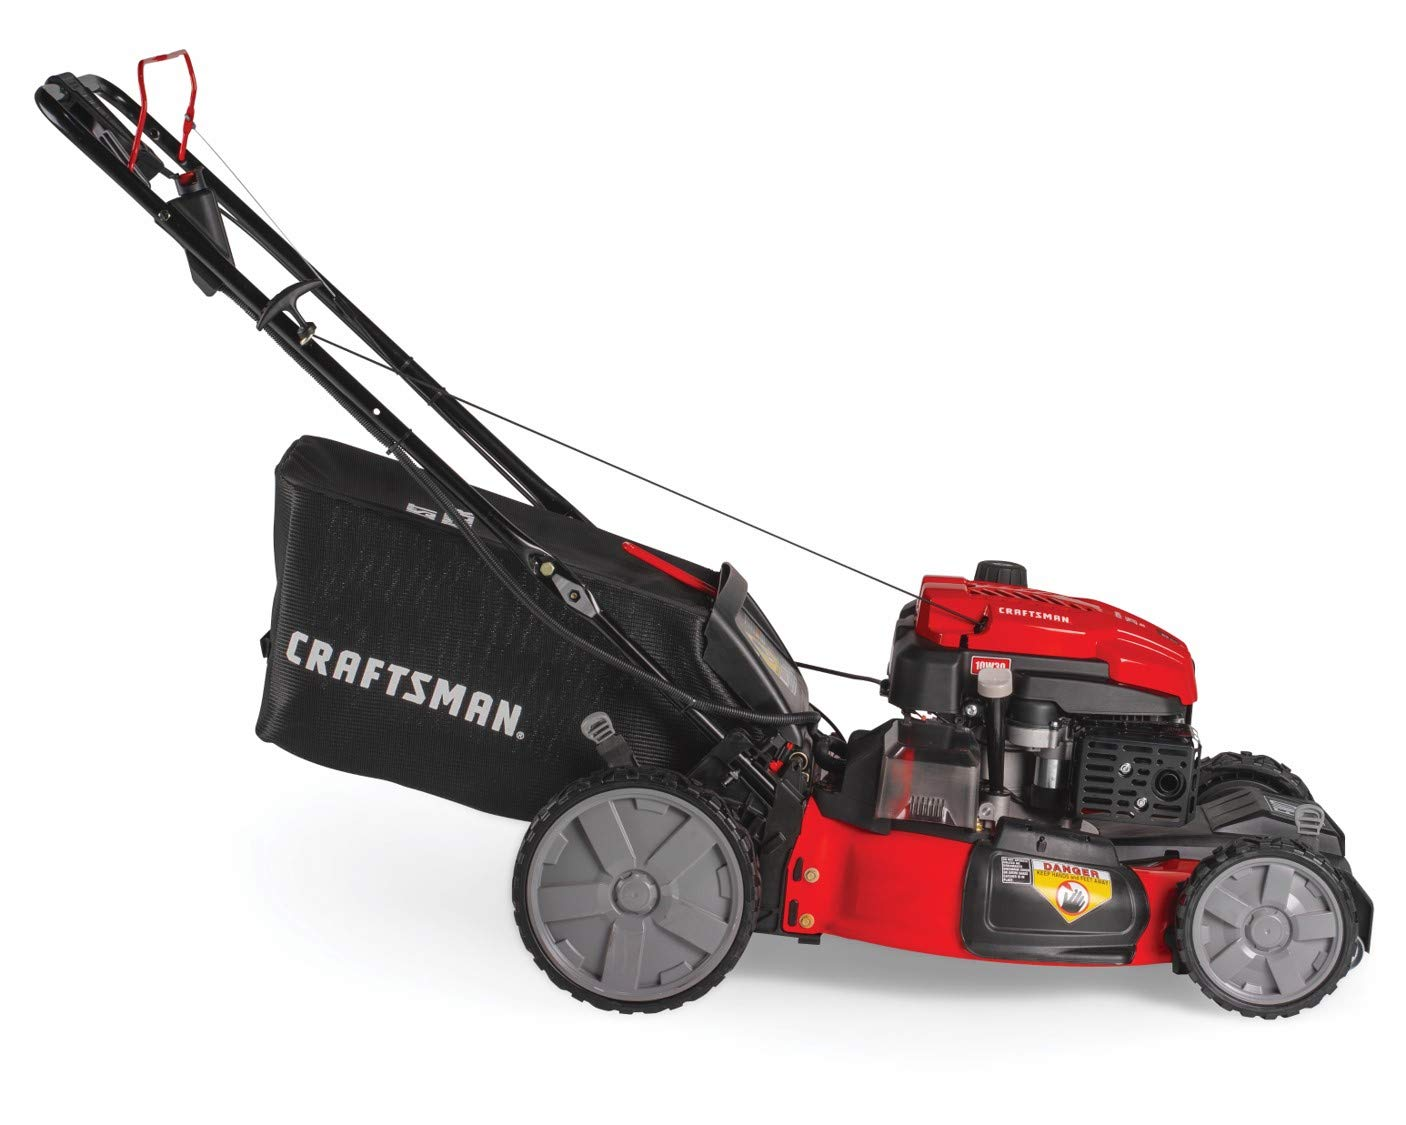 Craftsman M275 159cc 21-Inch 3-in-1 High-Wheeled  Self-Propelled FWD Gas Powered  Lawn Mower with Bagger 3 POWERFUL 159CC OHV GAS ENGINE: Powerful gas engine with 21-inch cutting deck to trim grass in one quick pass. 3-IN-1 CAPABILITIES: Unit has side discharge, rear discharge, and mulching capabilities. FRONT WHEEL DRIVE AND SELF-PROPELLED: Move around your yard with less effort at the propulsion speed of your choice.